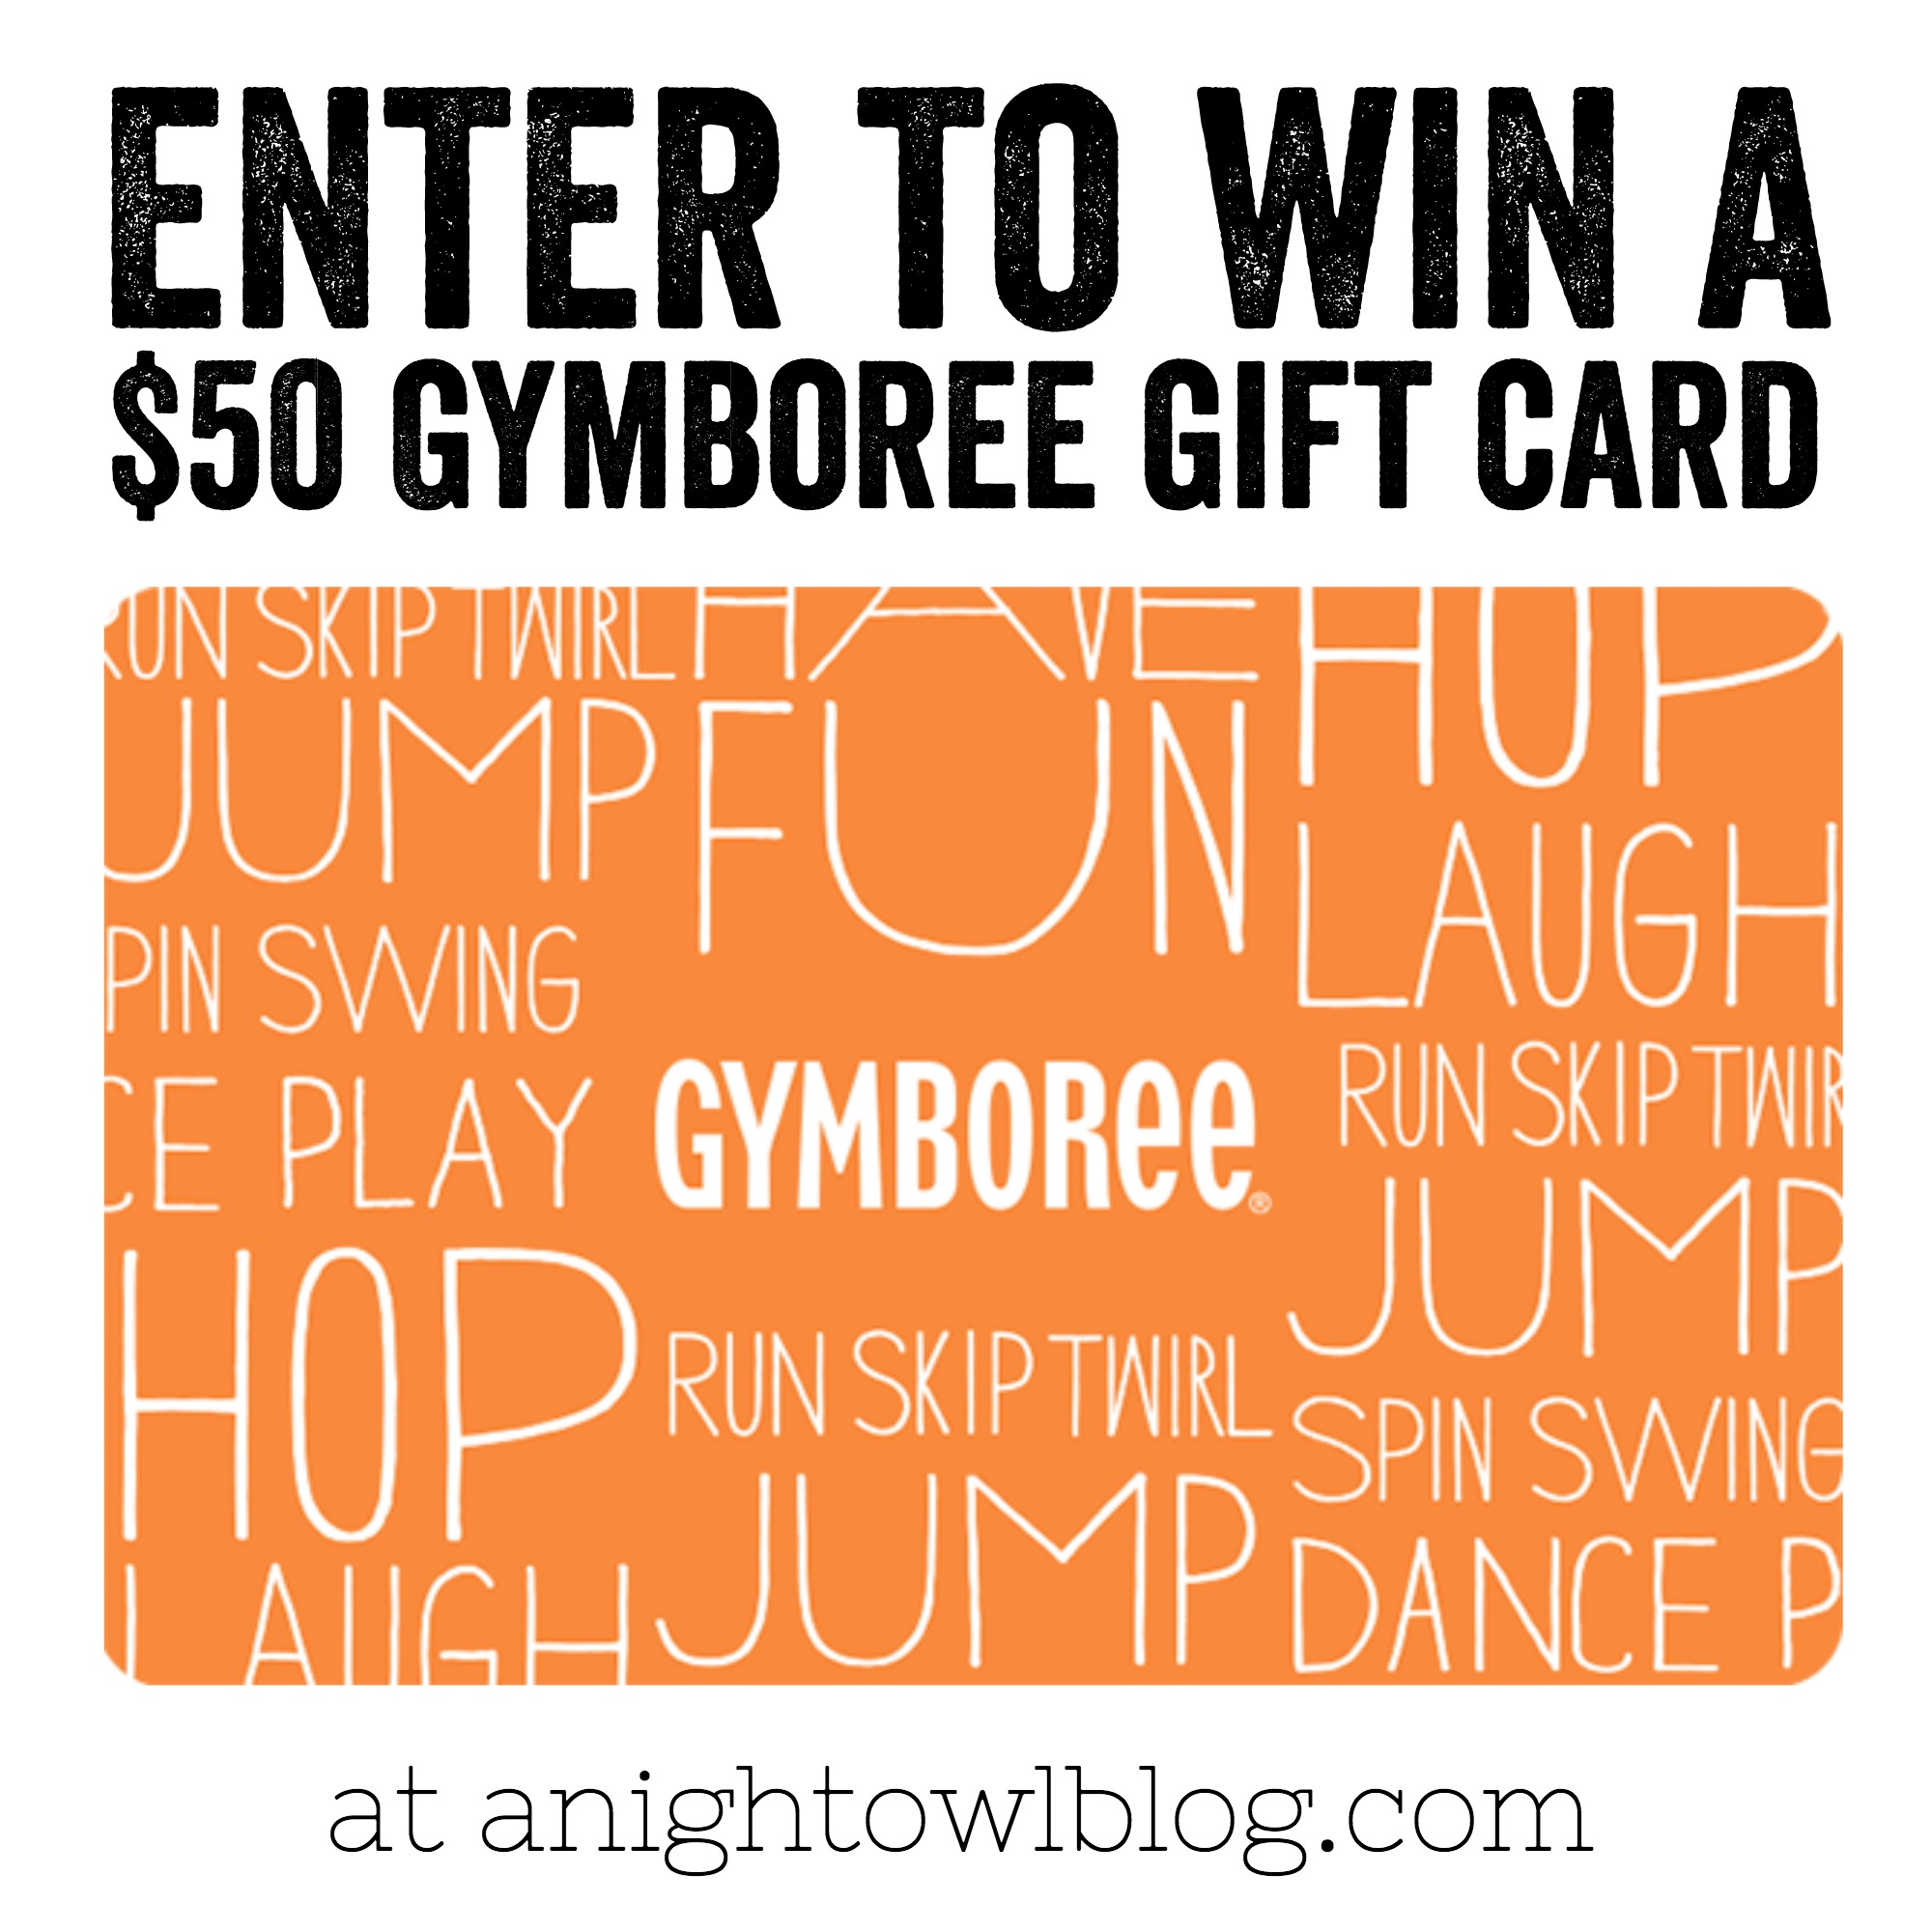 Enter to WIN a Gymboree Gift Card at anightowlblog.com. Ends 8/12/16.